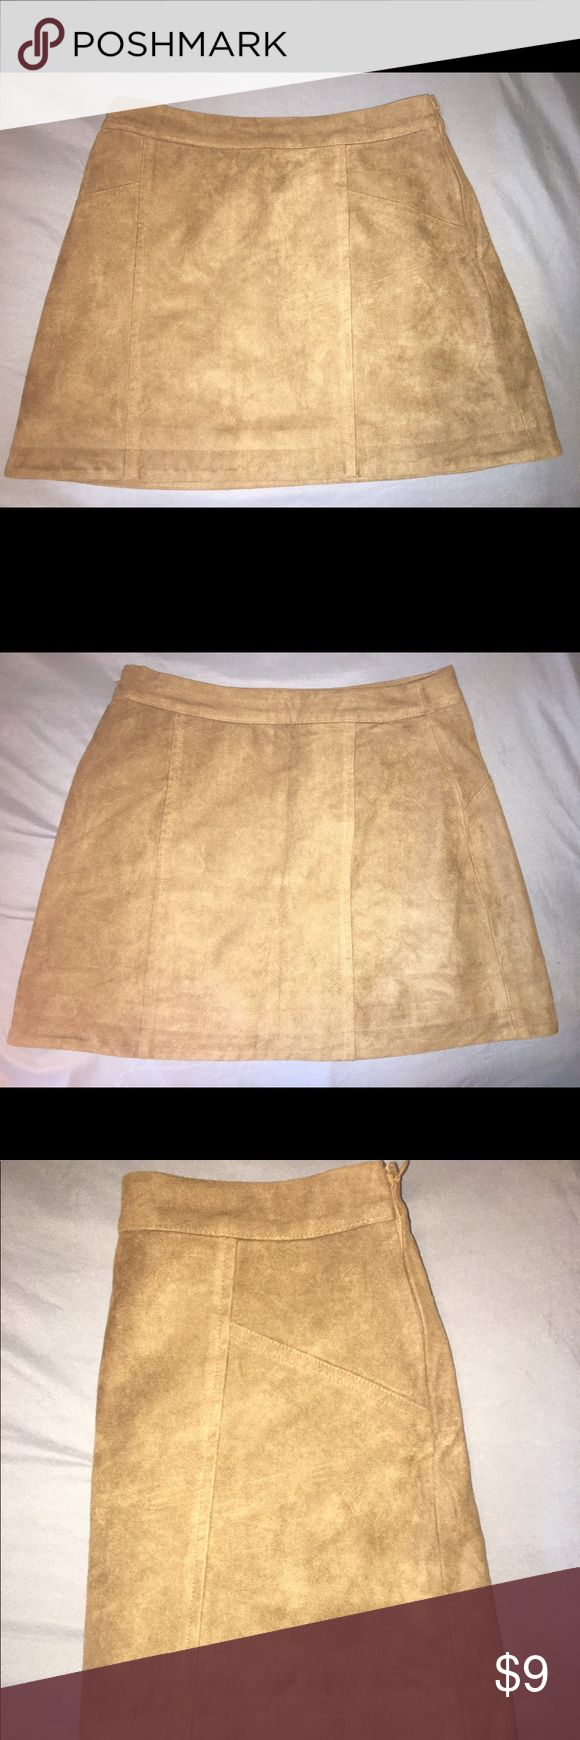 Brown Abercrombie and Fitch skirt Brown. Velvety material. Size 0. Gently warm in great condition. 14 ½ in. Long. Super cute for the summer! Abercrombie & Fitch Skirts Mini